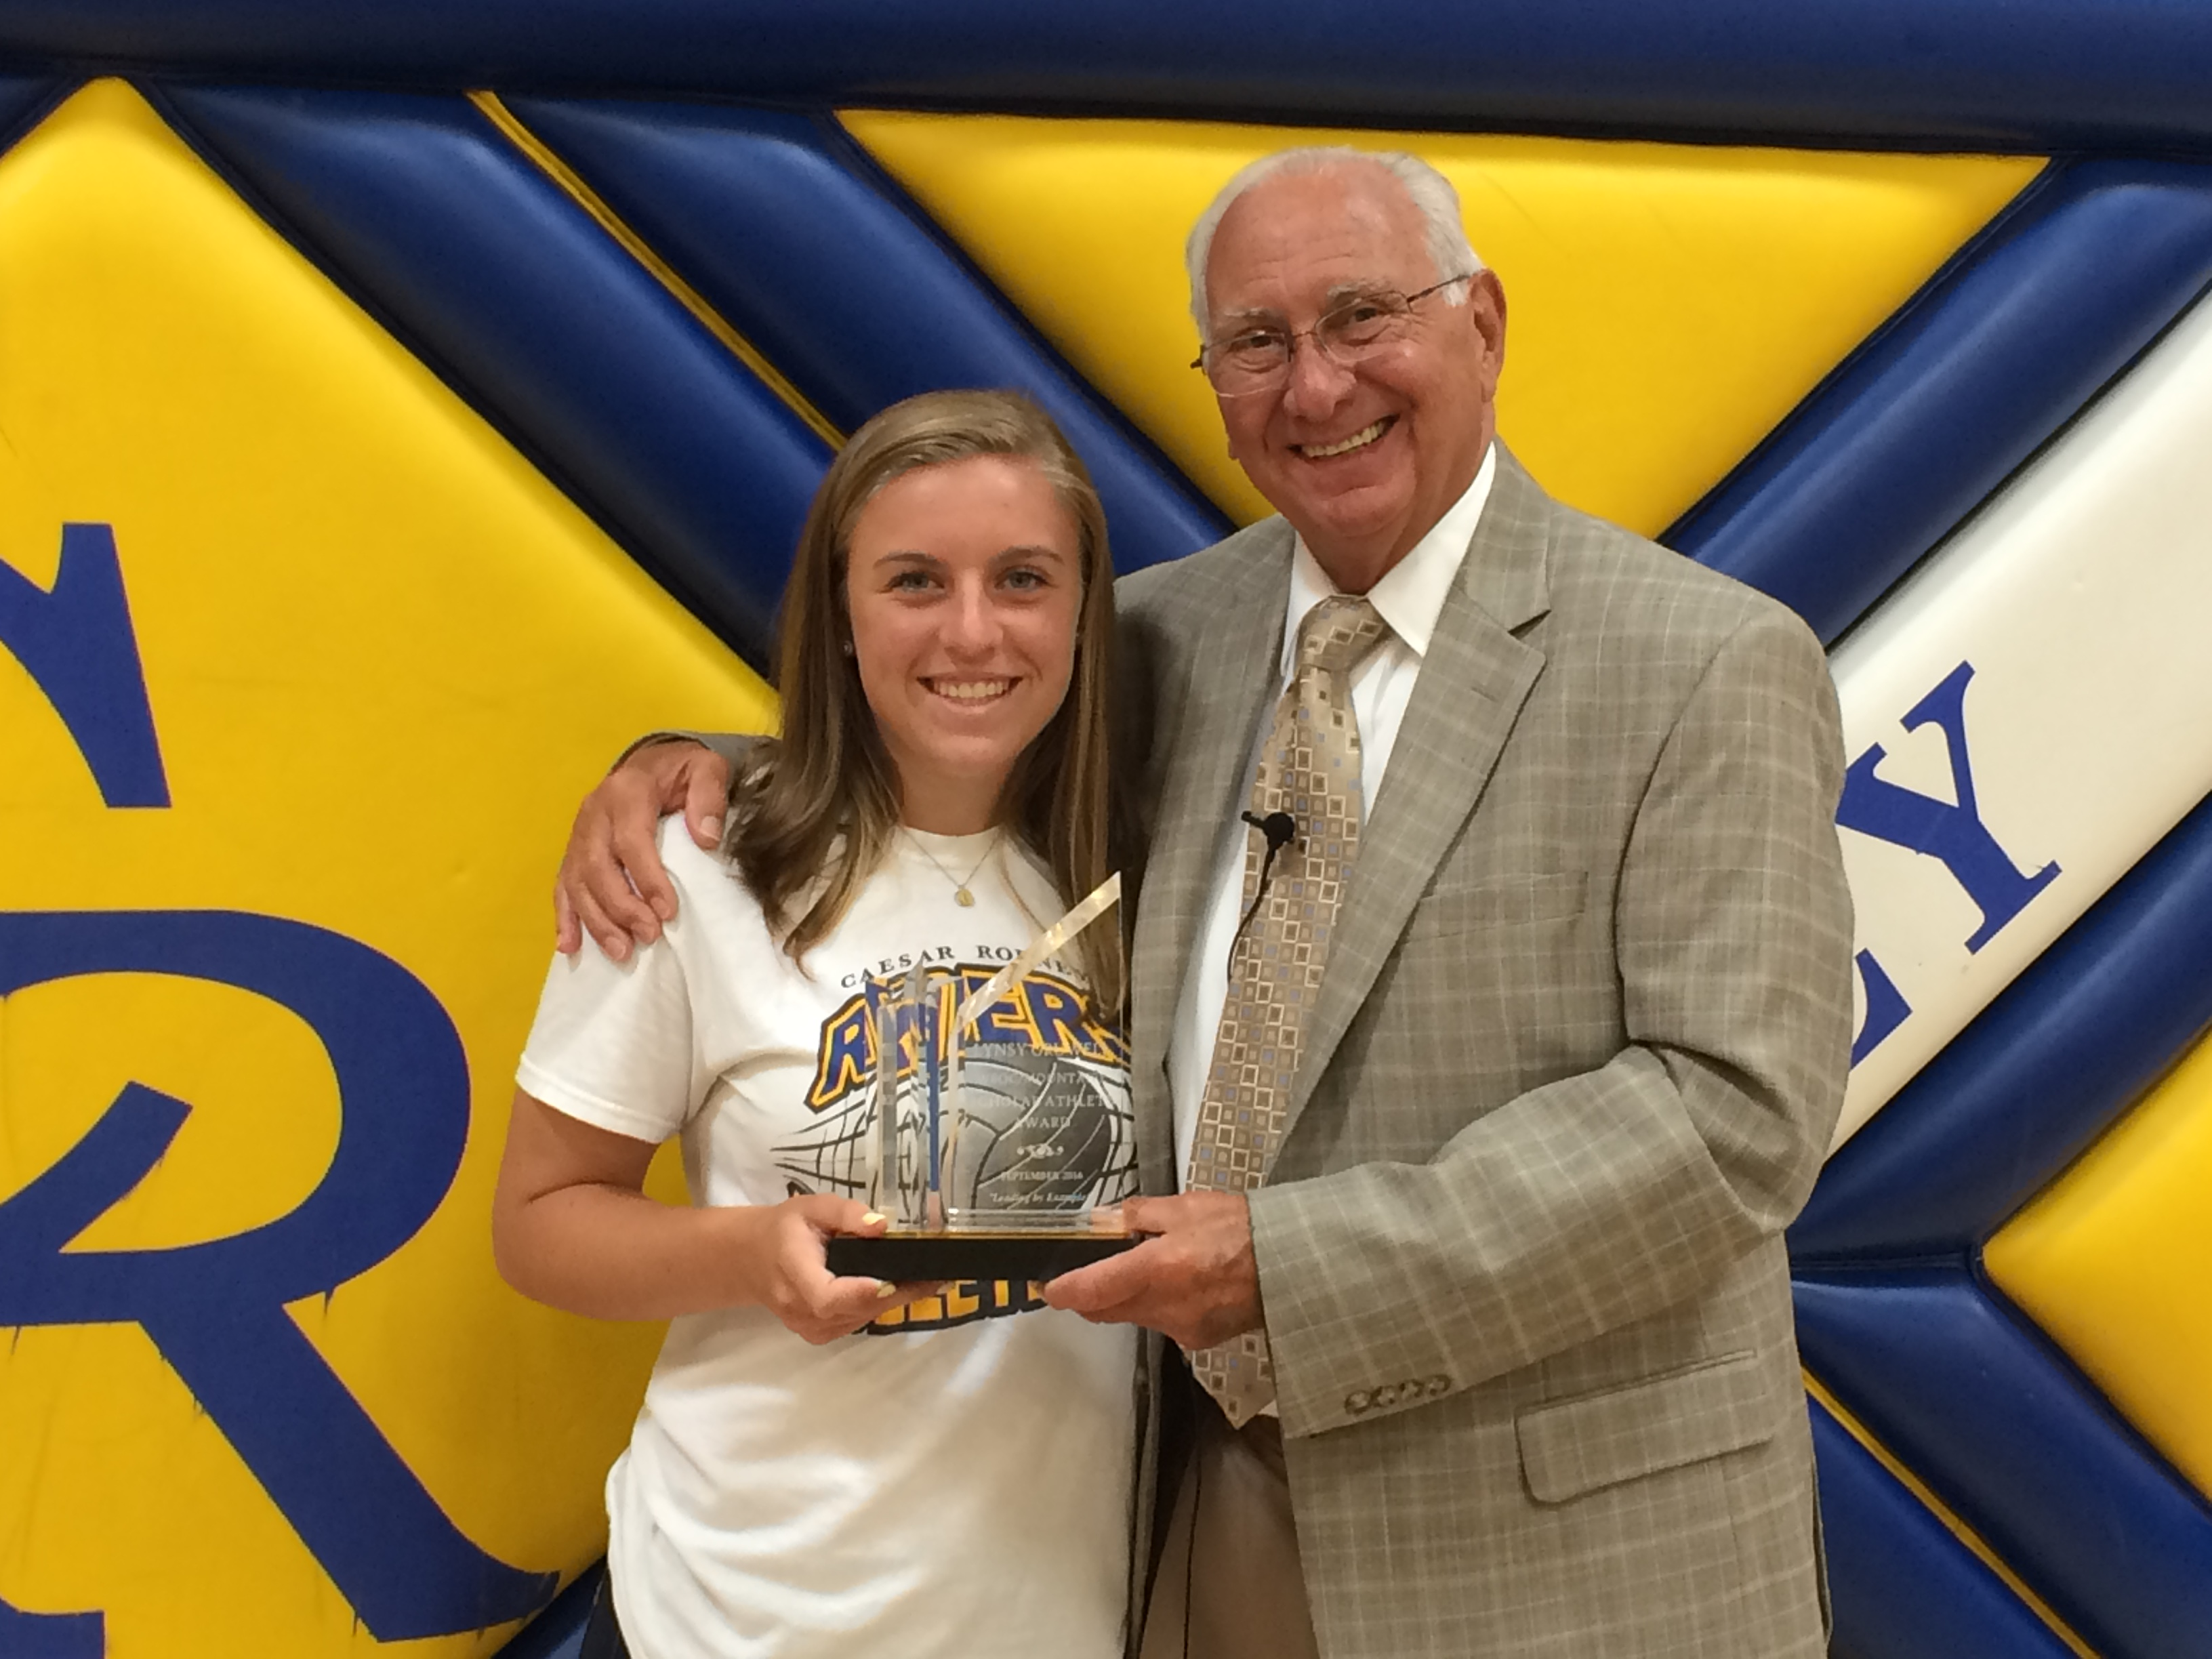 WBOC/Mountaire Farms September Scholar Athlete of the Month – Lynsey Gruwell Caesar Rodney